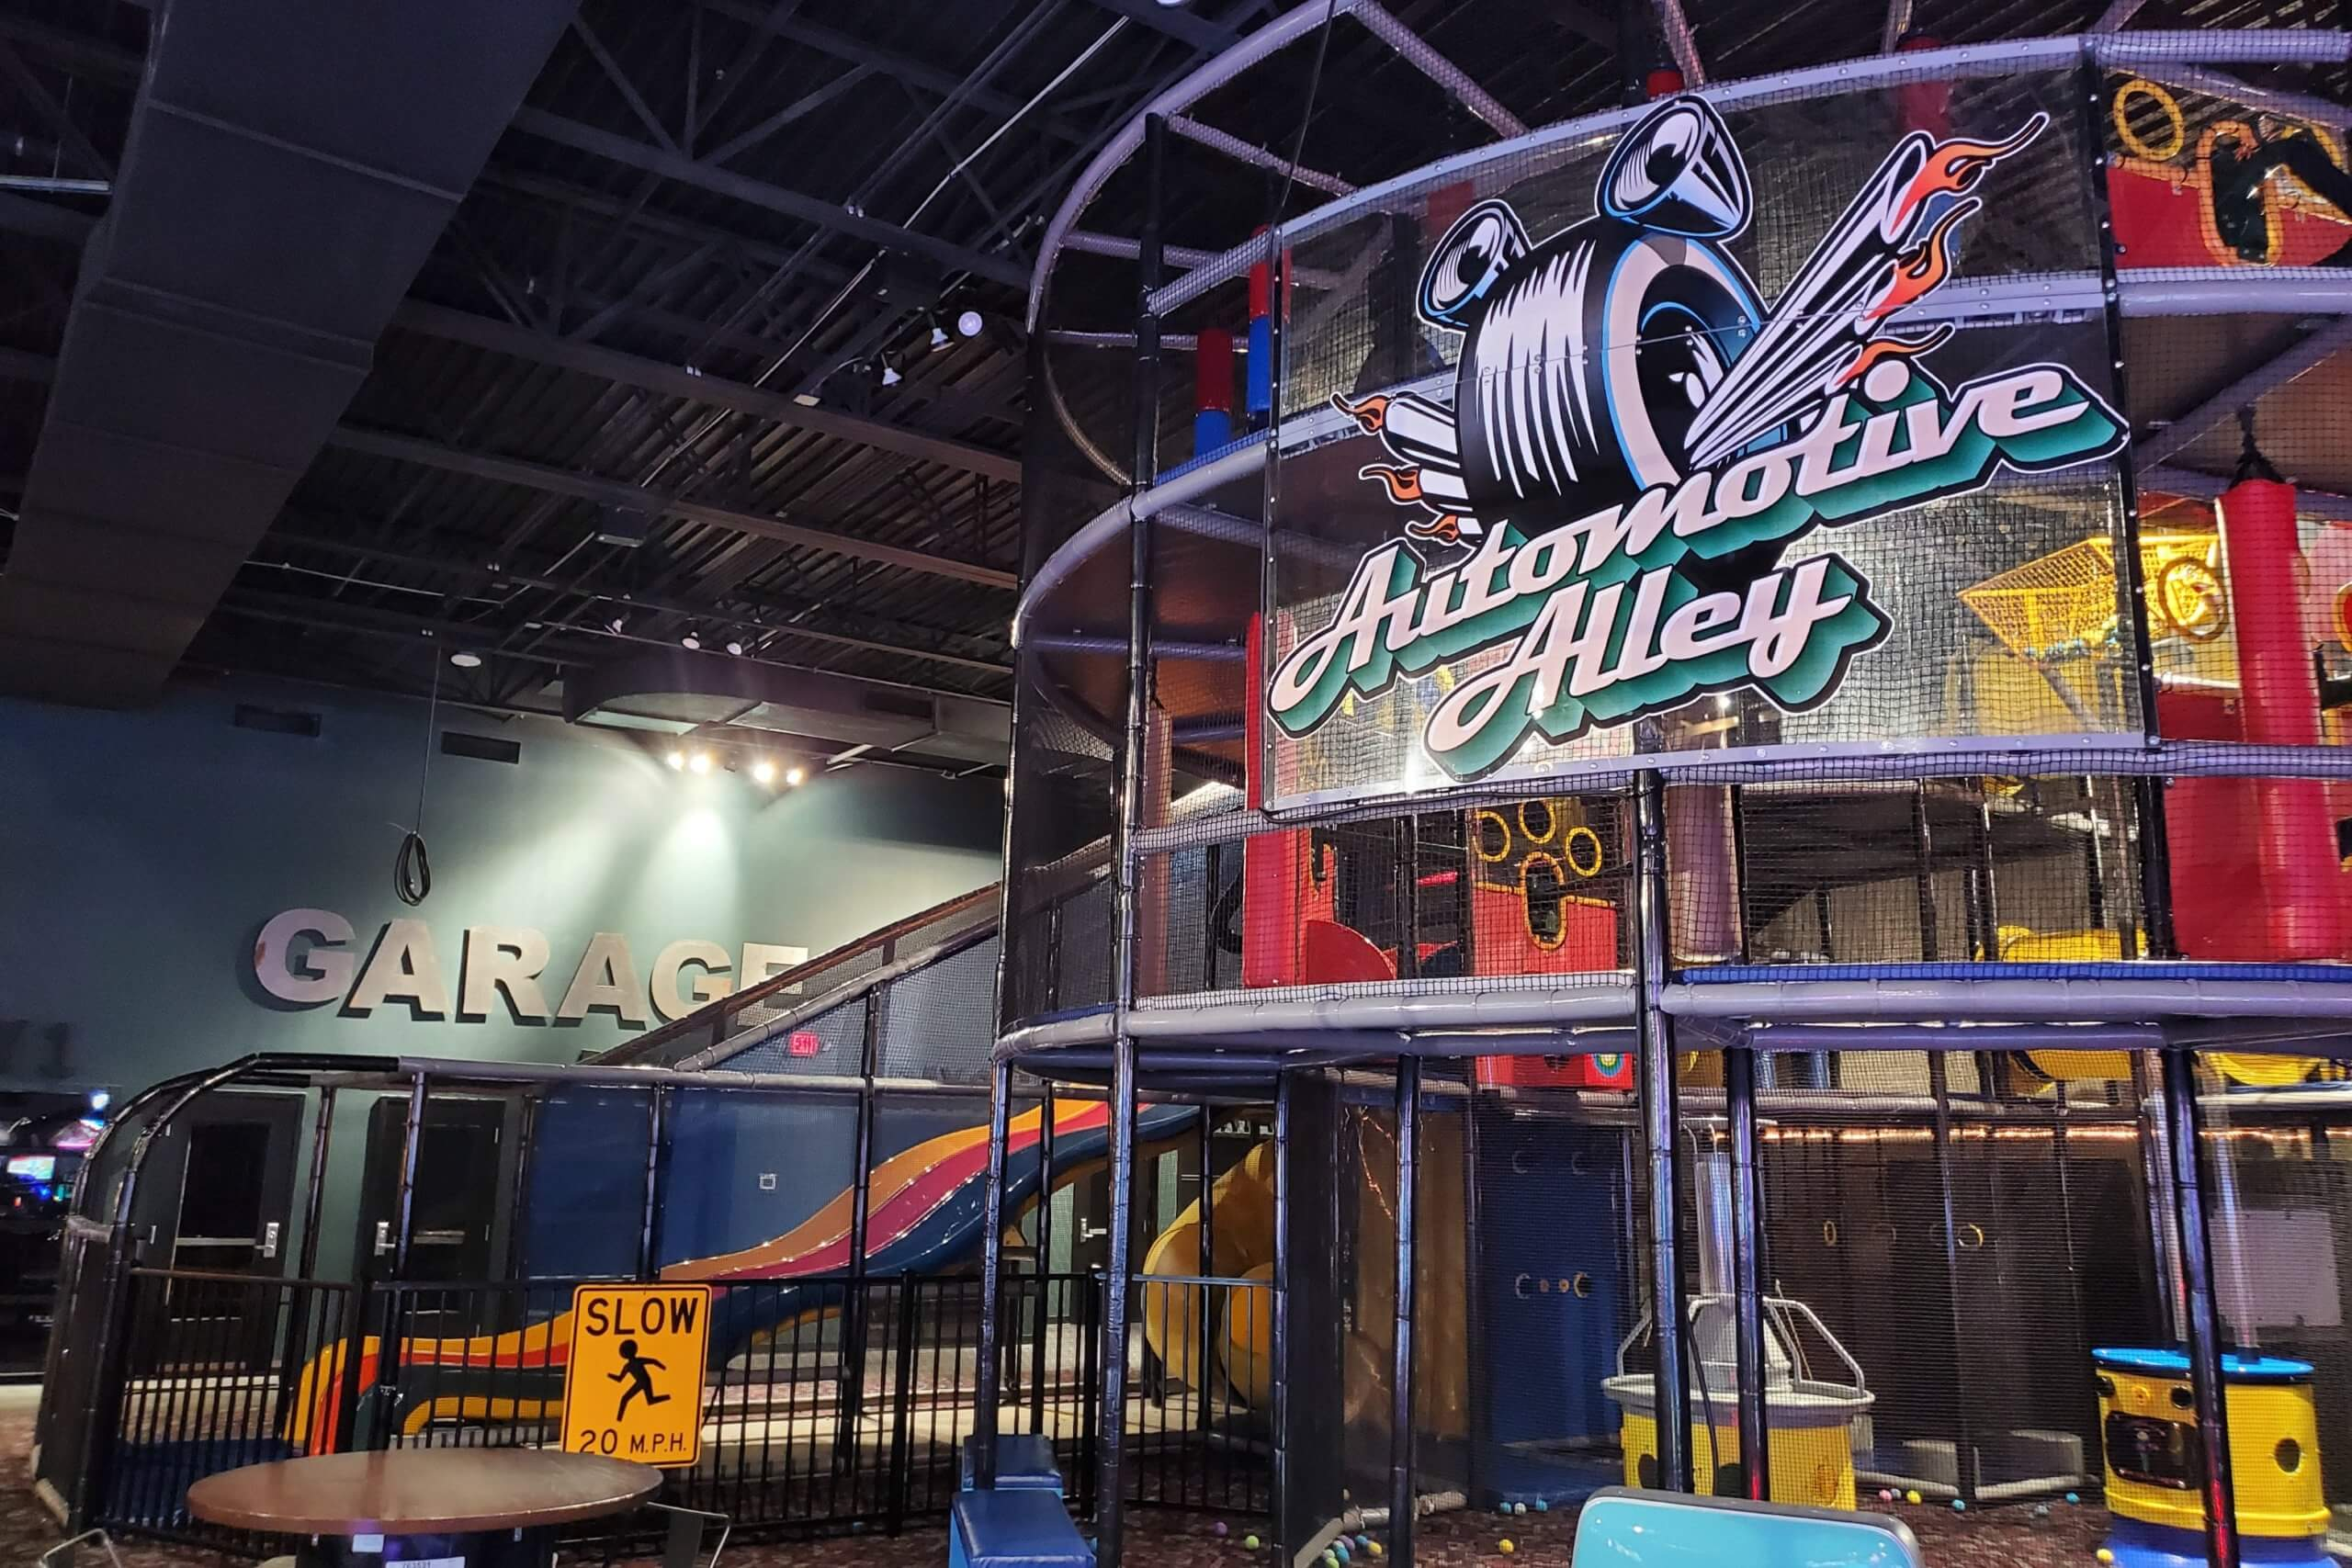 Rev'd Up Fun Offers An Indoor Playland The Whole Family Will Love